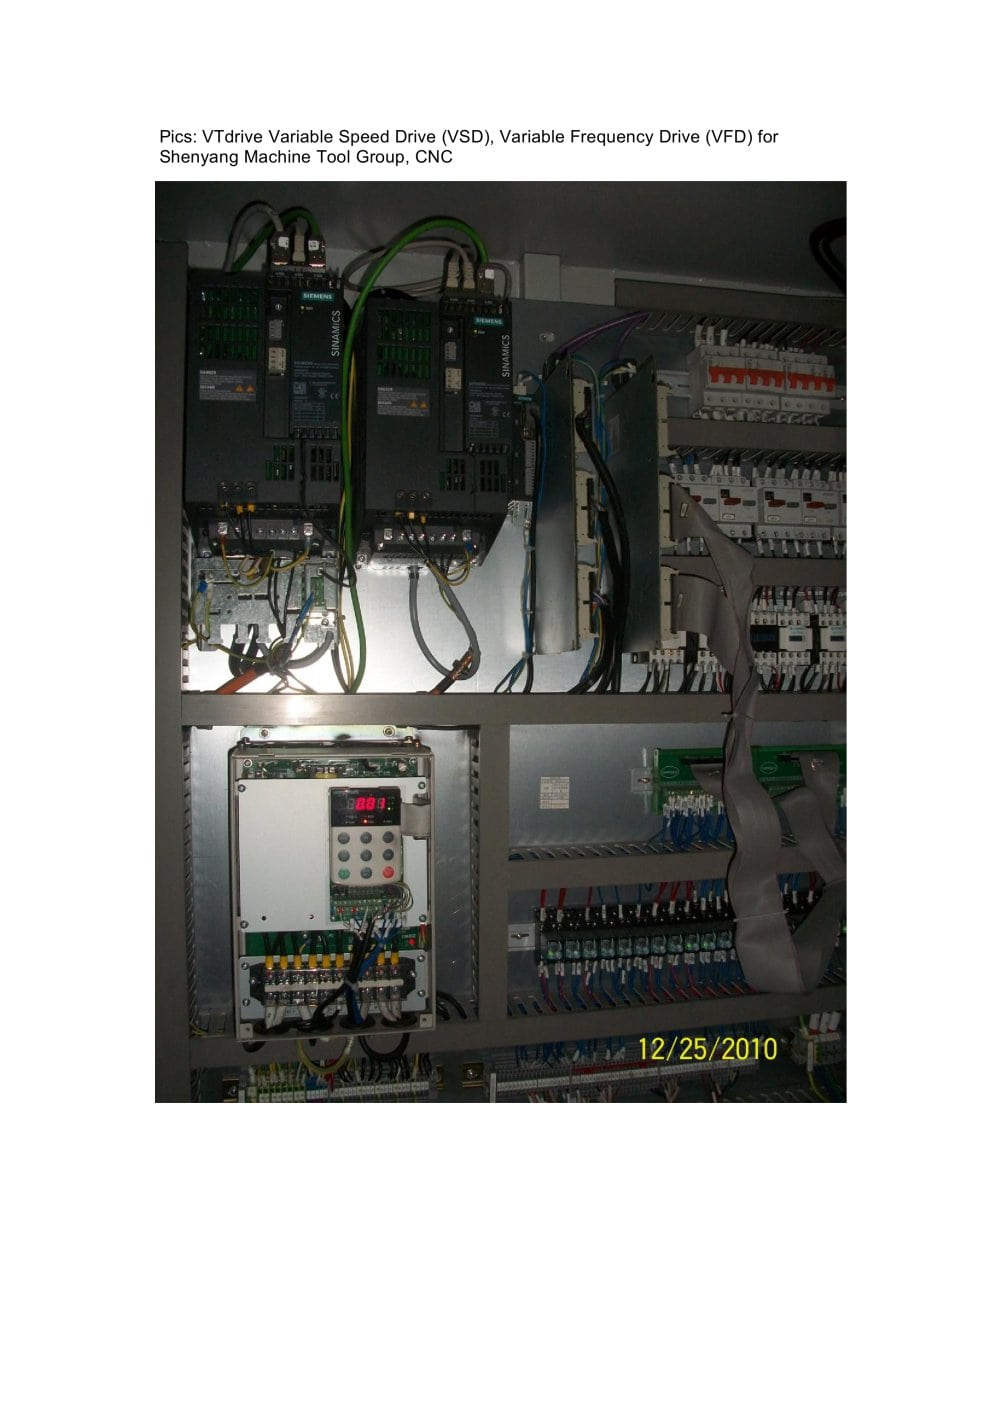 vtdrive variable speed drive vsd variable frequency drive vfd shenyang machine tool group cnc 611631_1b vtdrive variable speed drive (vsd), variable frequency drive (vfd